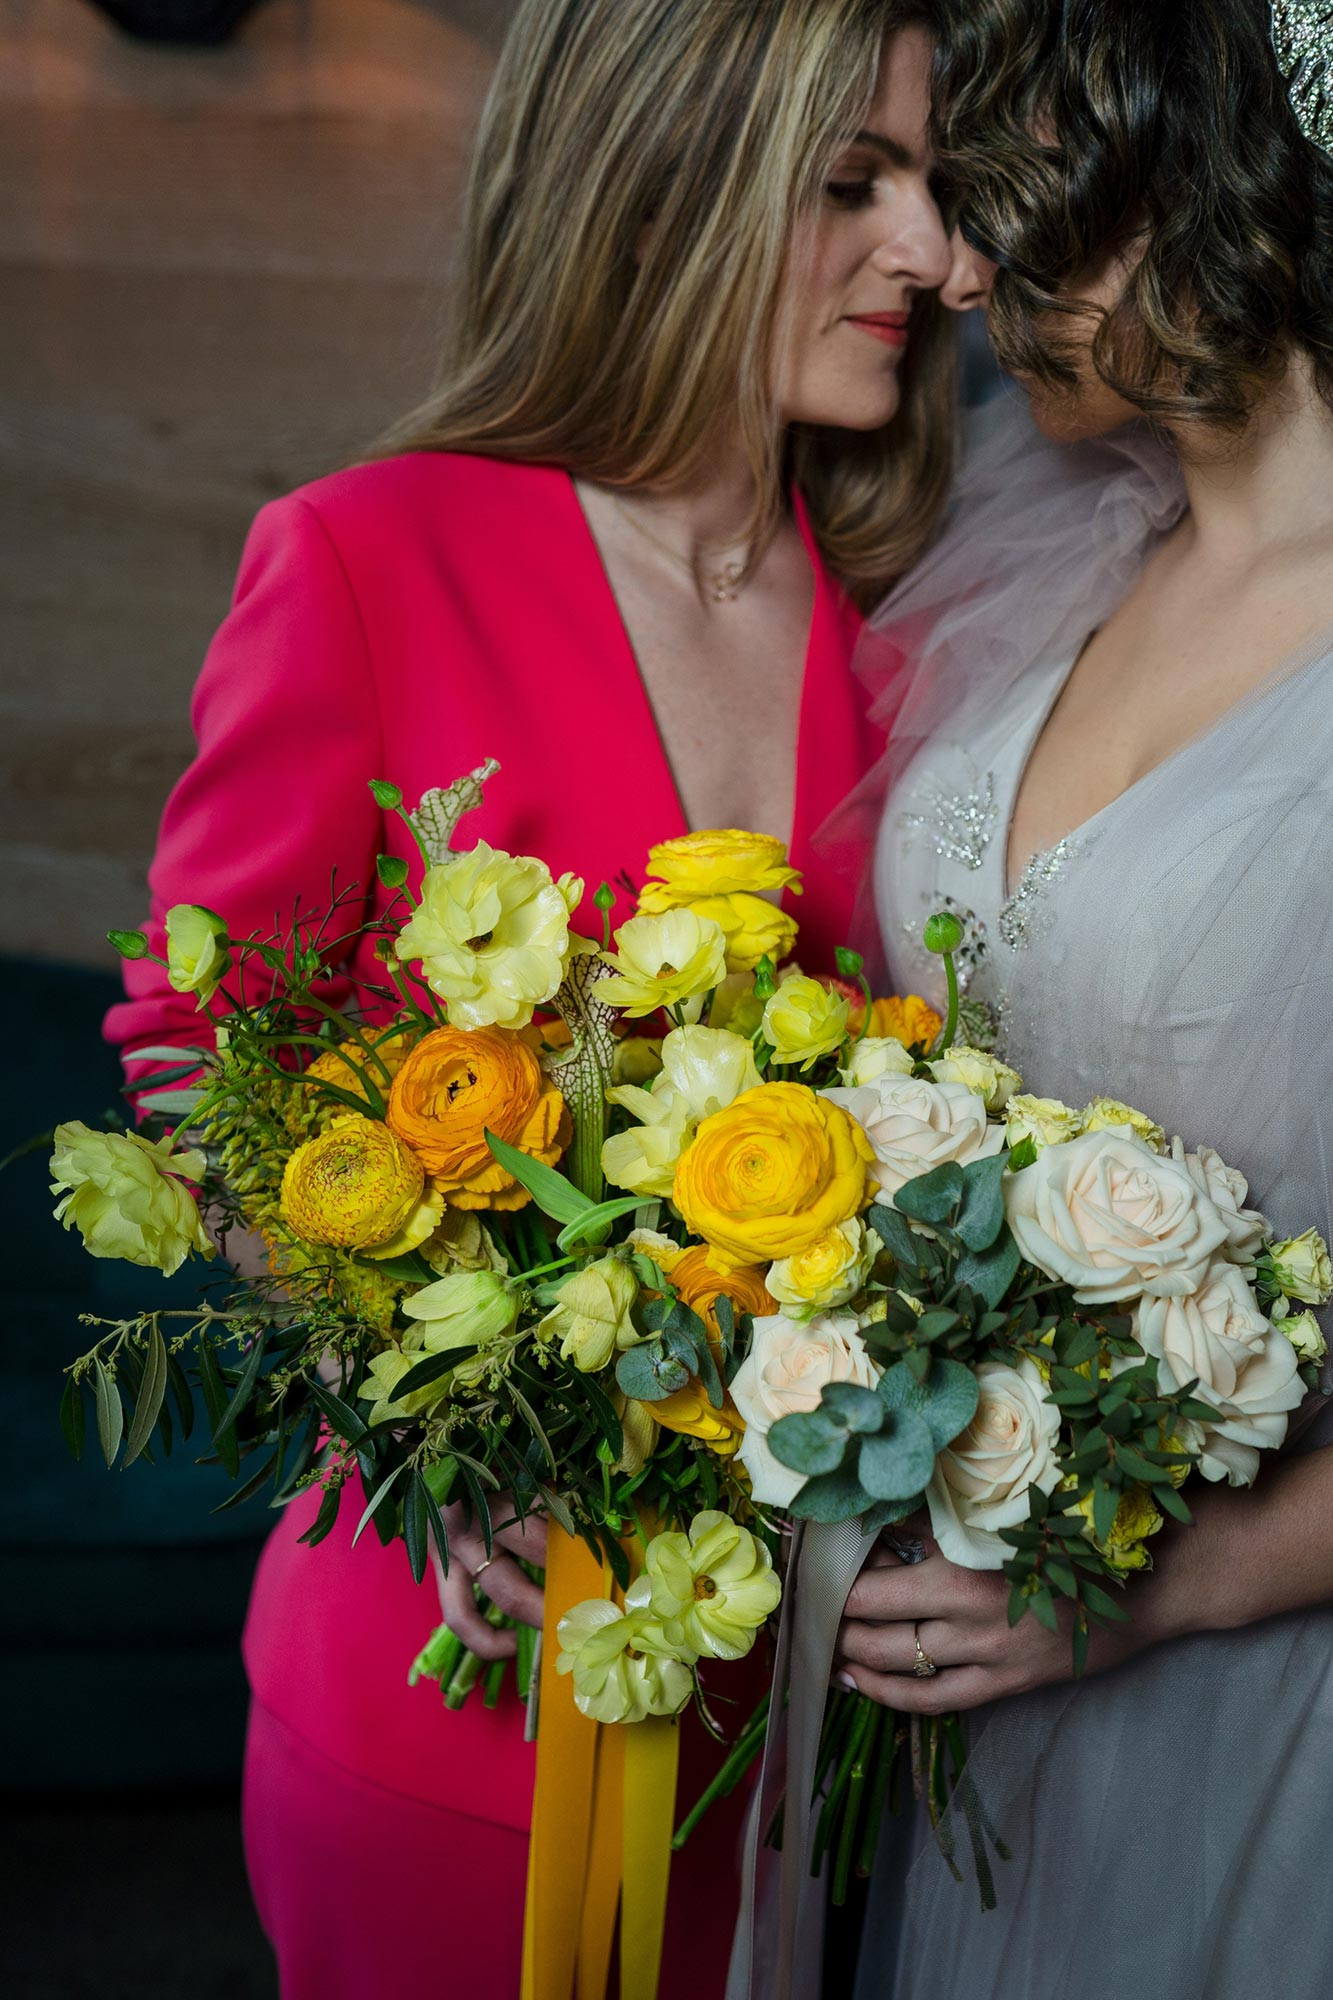 Bright Neon Wedding Inspiration at The Bowery Hotel NYC showing coupld in gray dress and neon pink suit holding yellow bouquets JC Lemon Photography